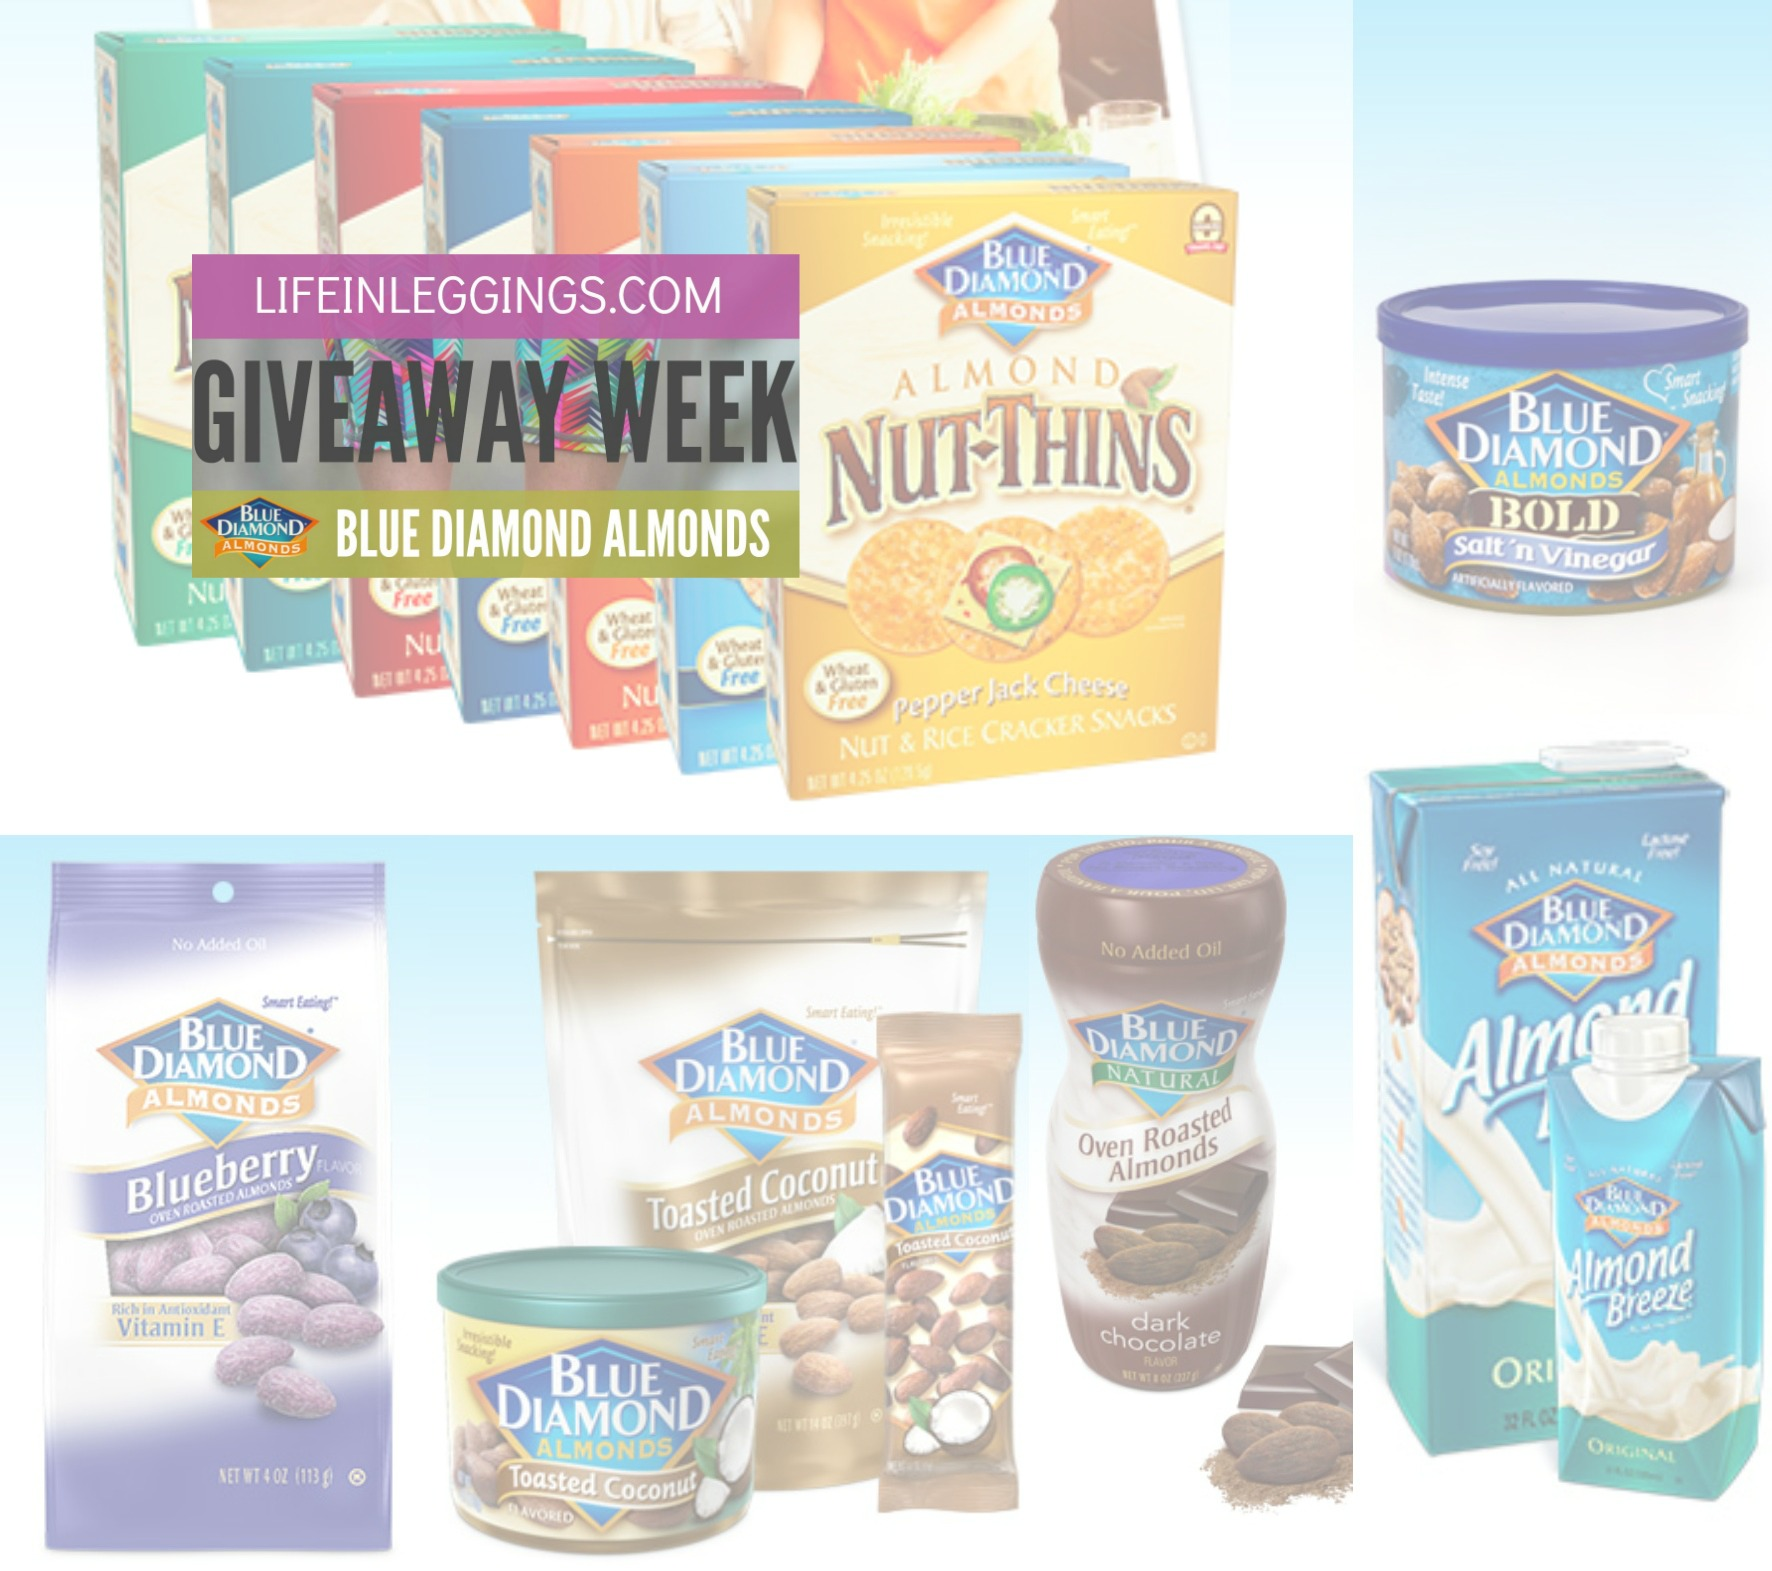 blue diamond almond giveaway package